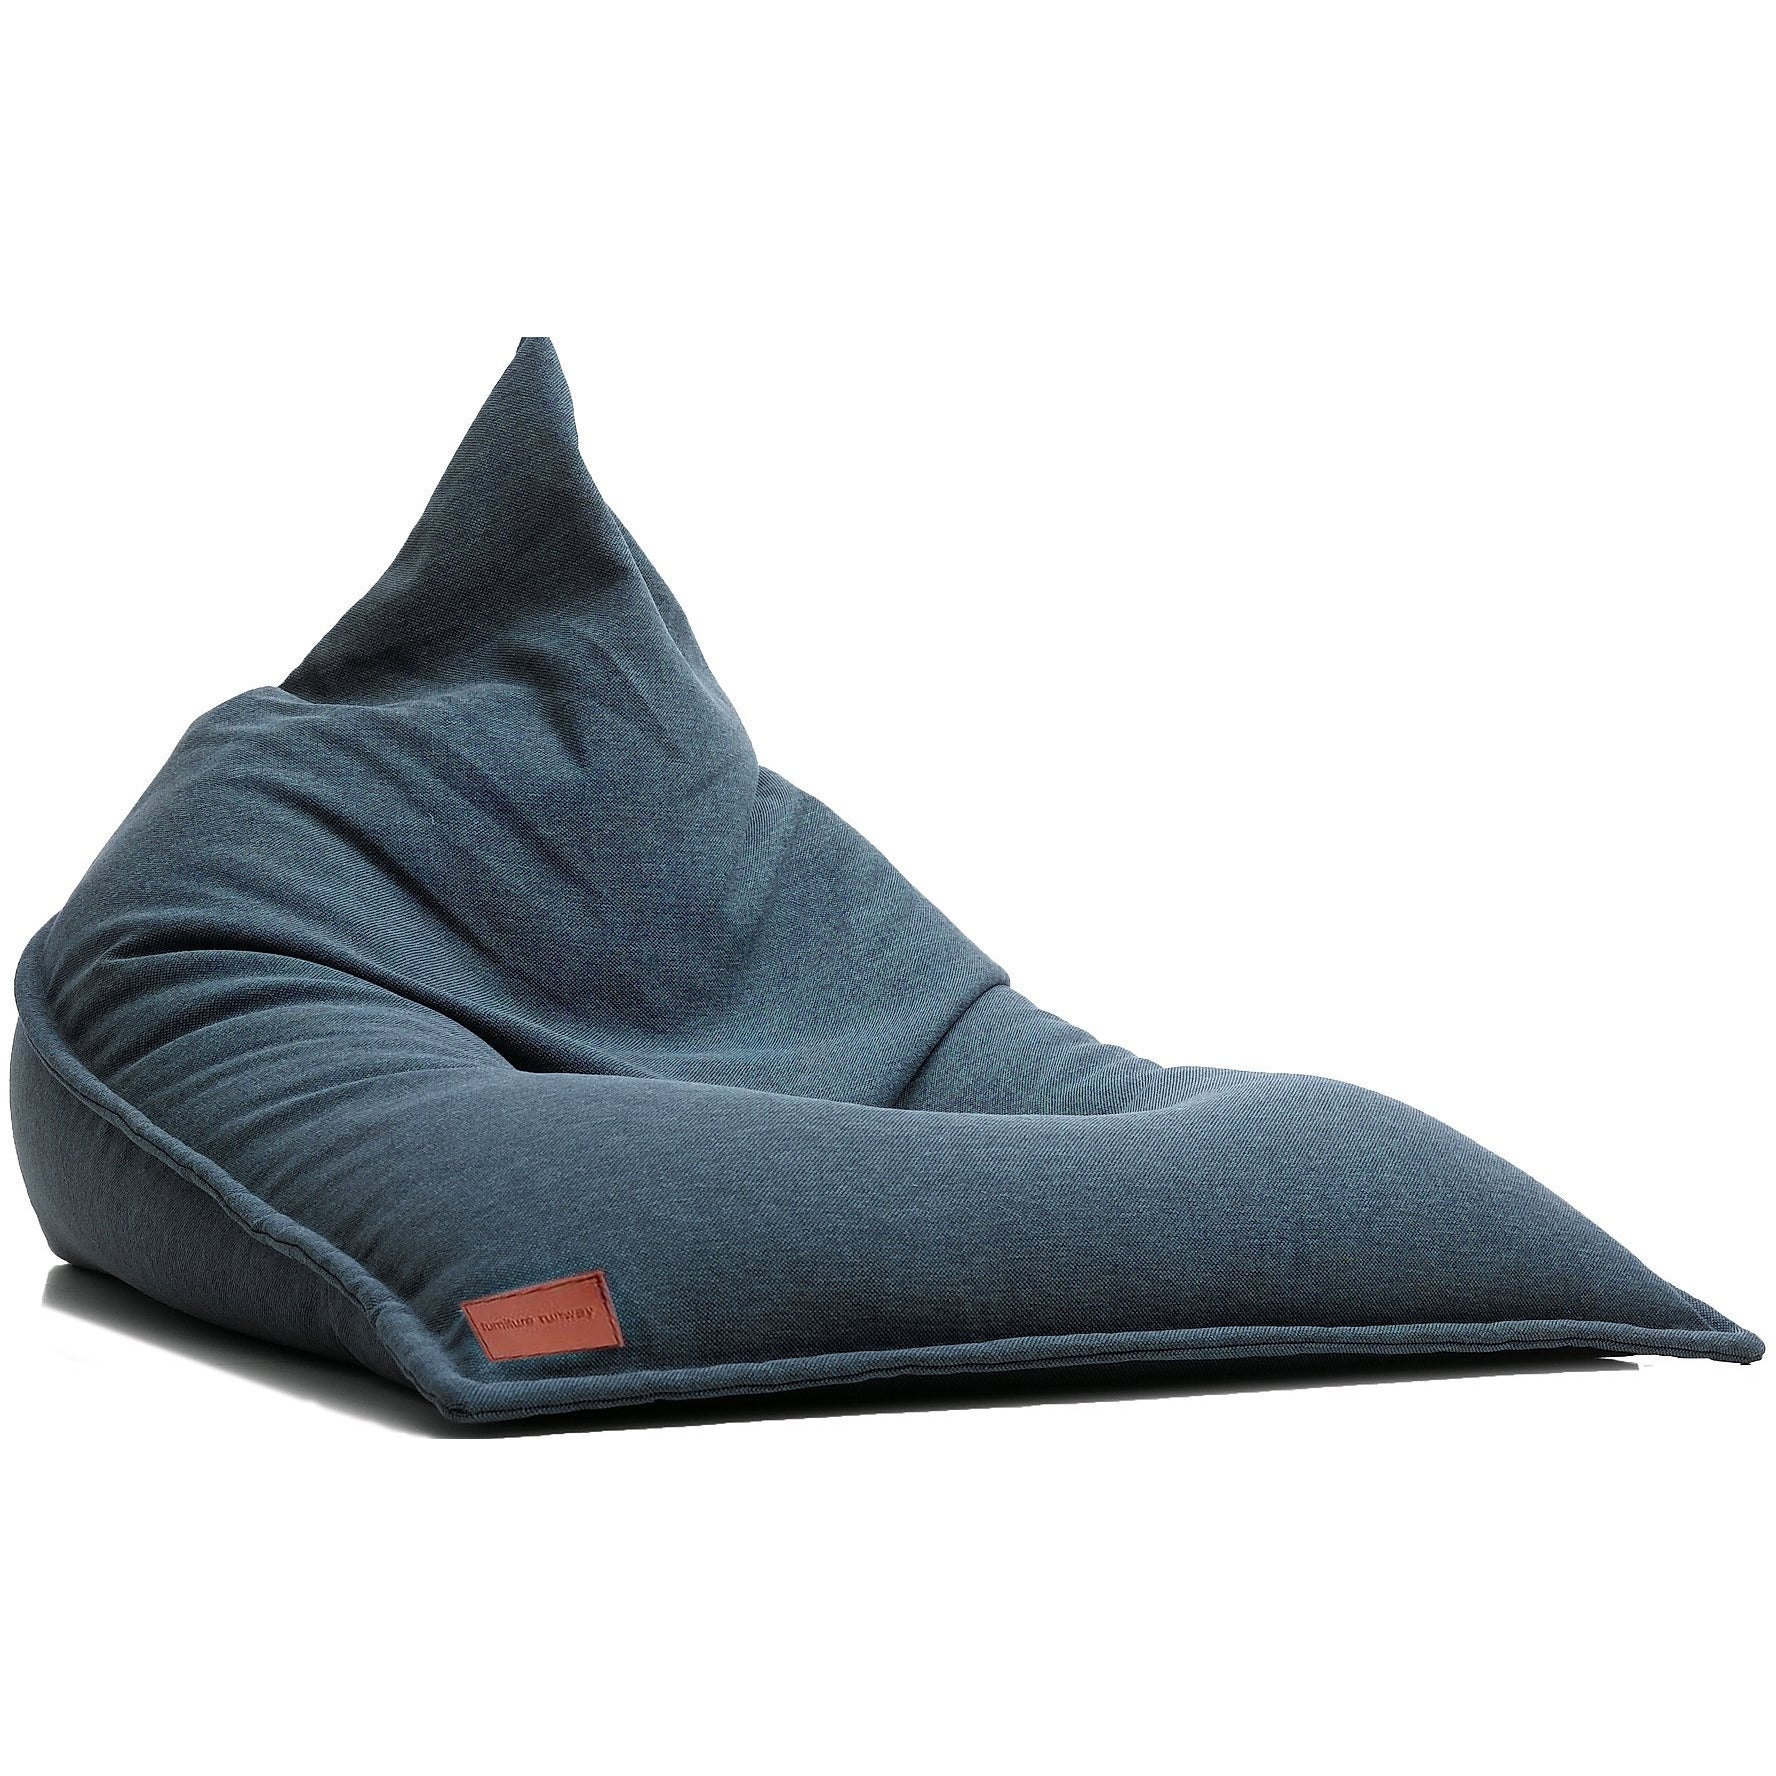 Gigi Bean Bag - Outdoor Living Essentials